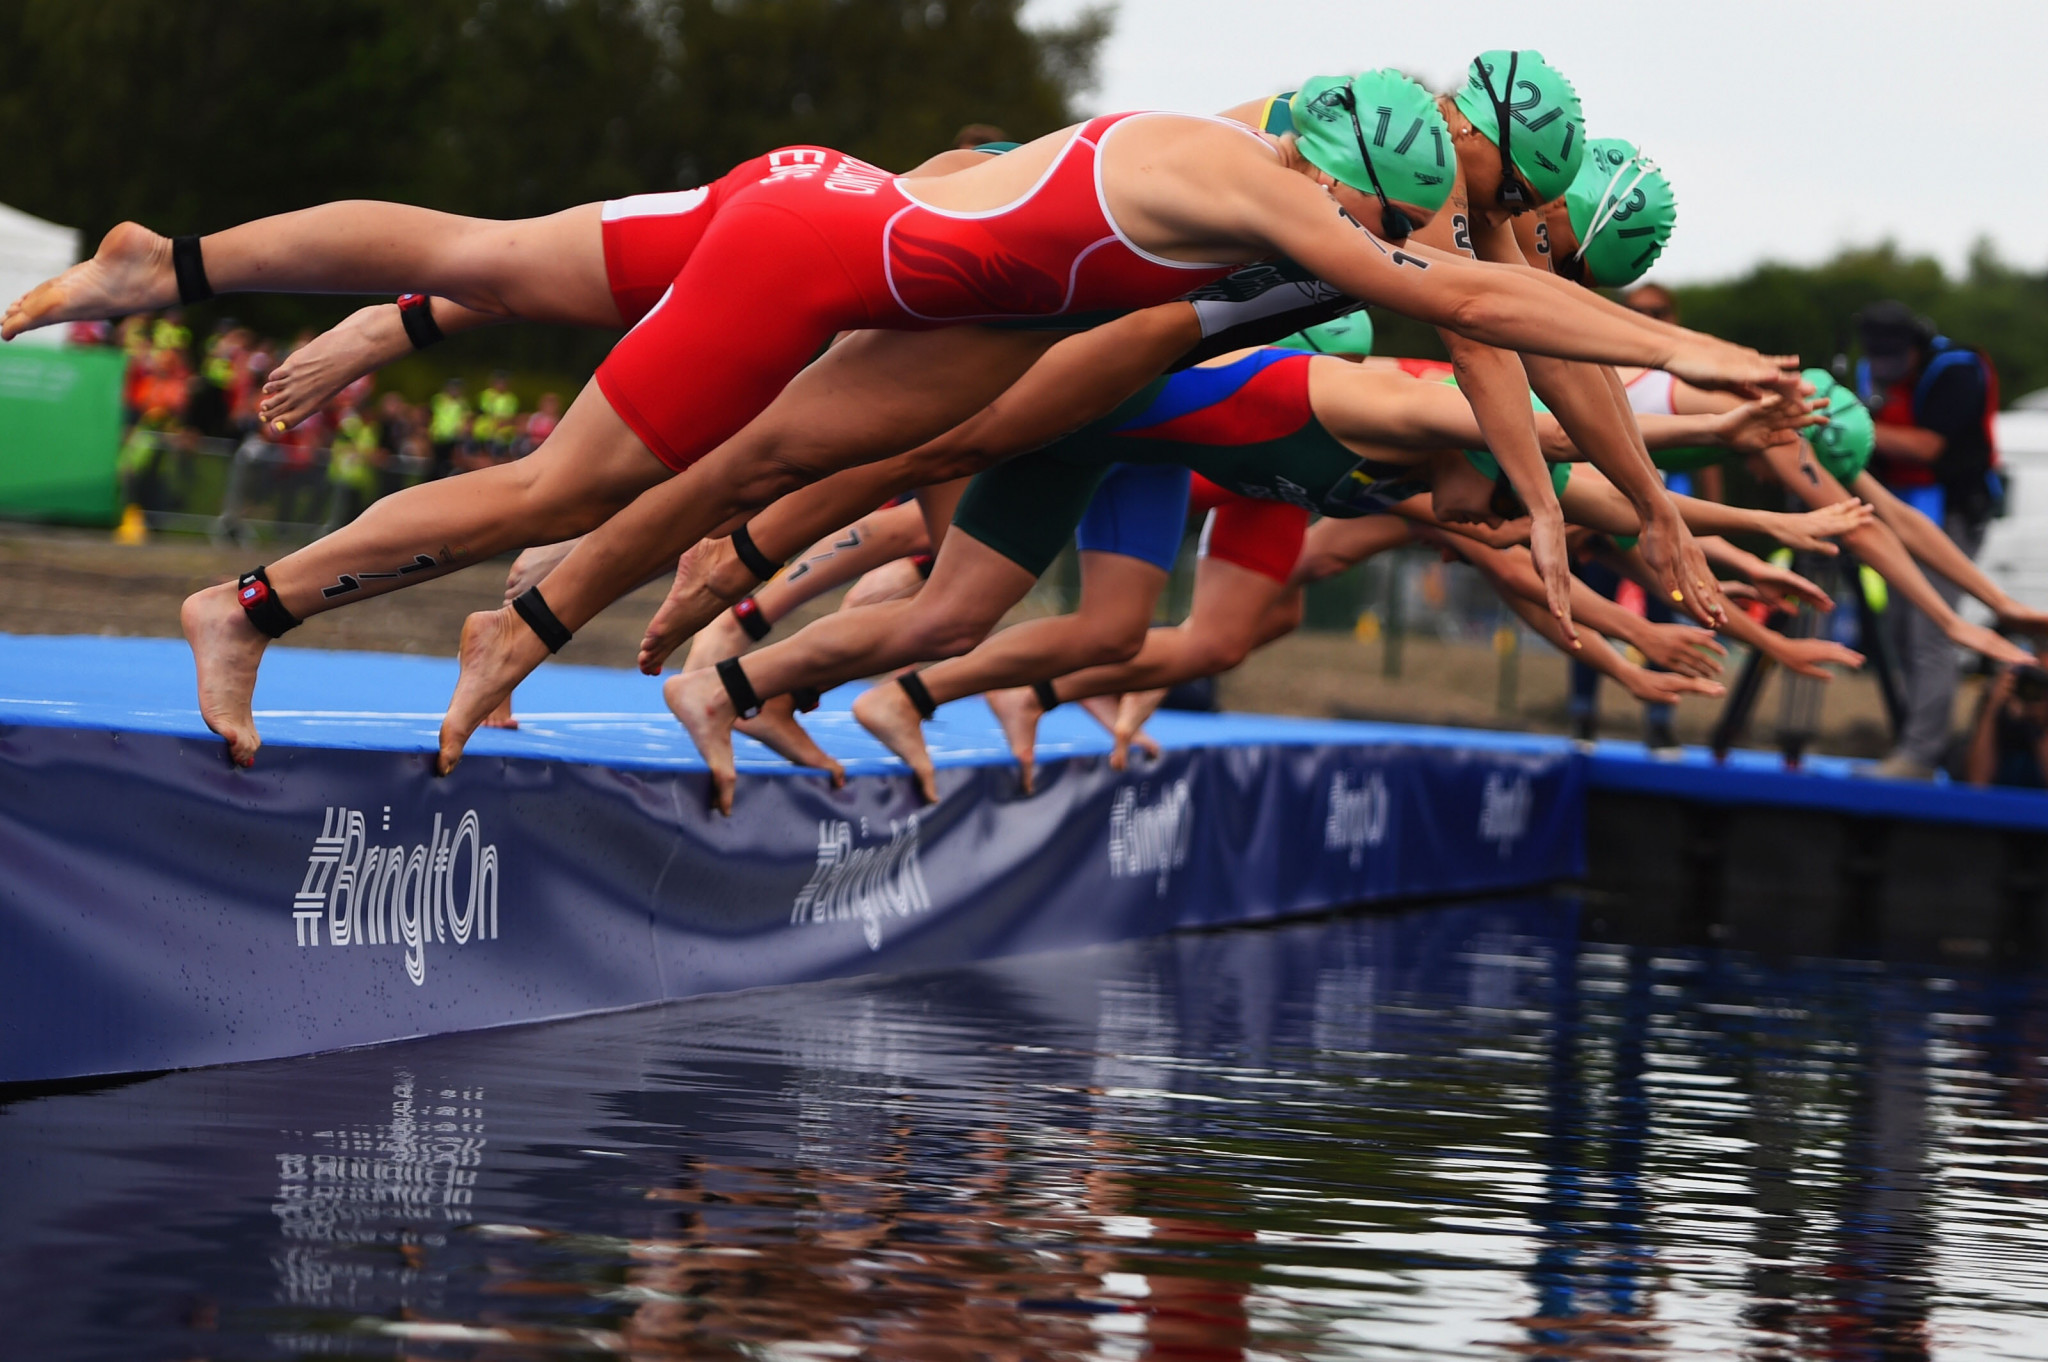 Triathlon action at Strathclyde Country Park during the Glasgow 2014 Commonwealth Games ©Getty Images